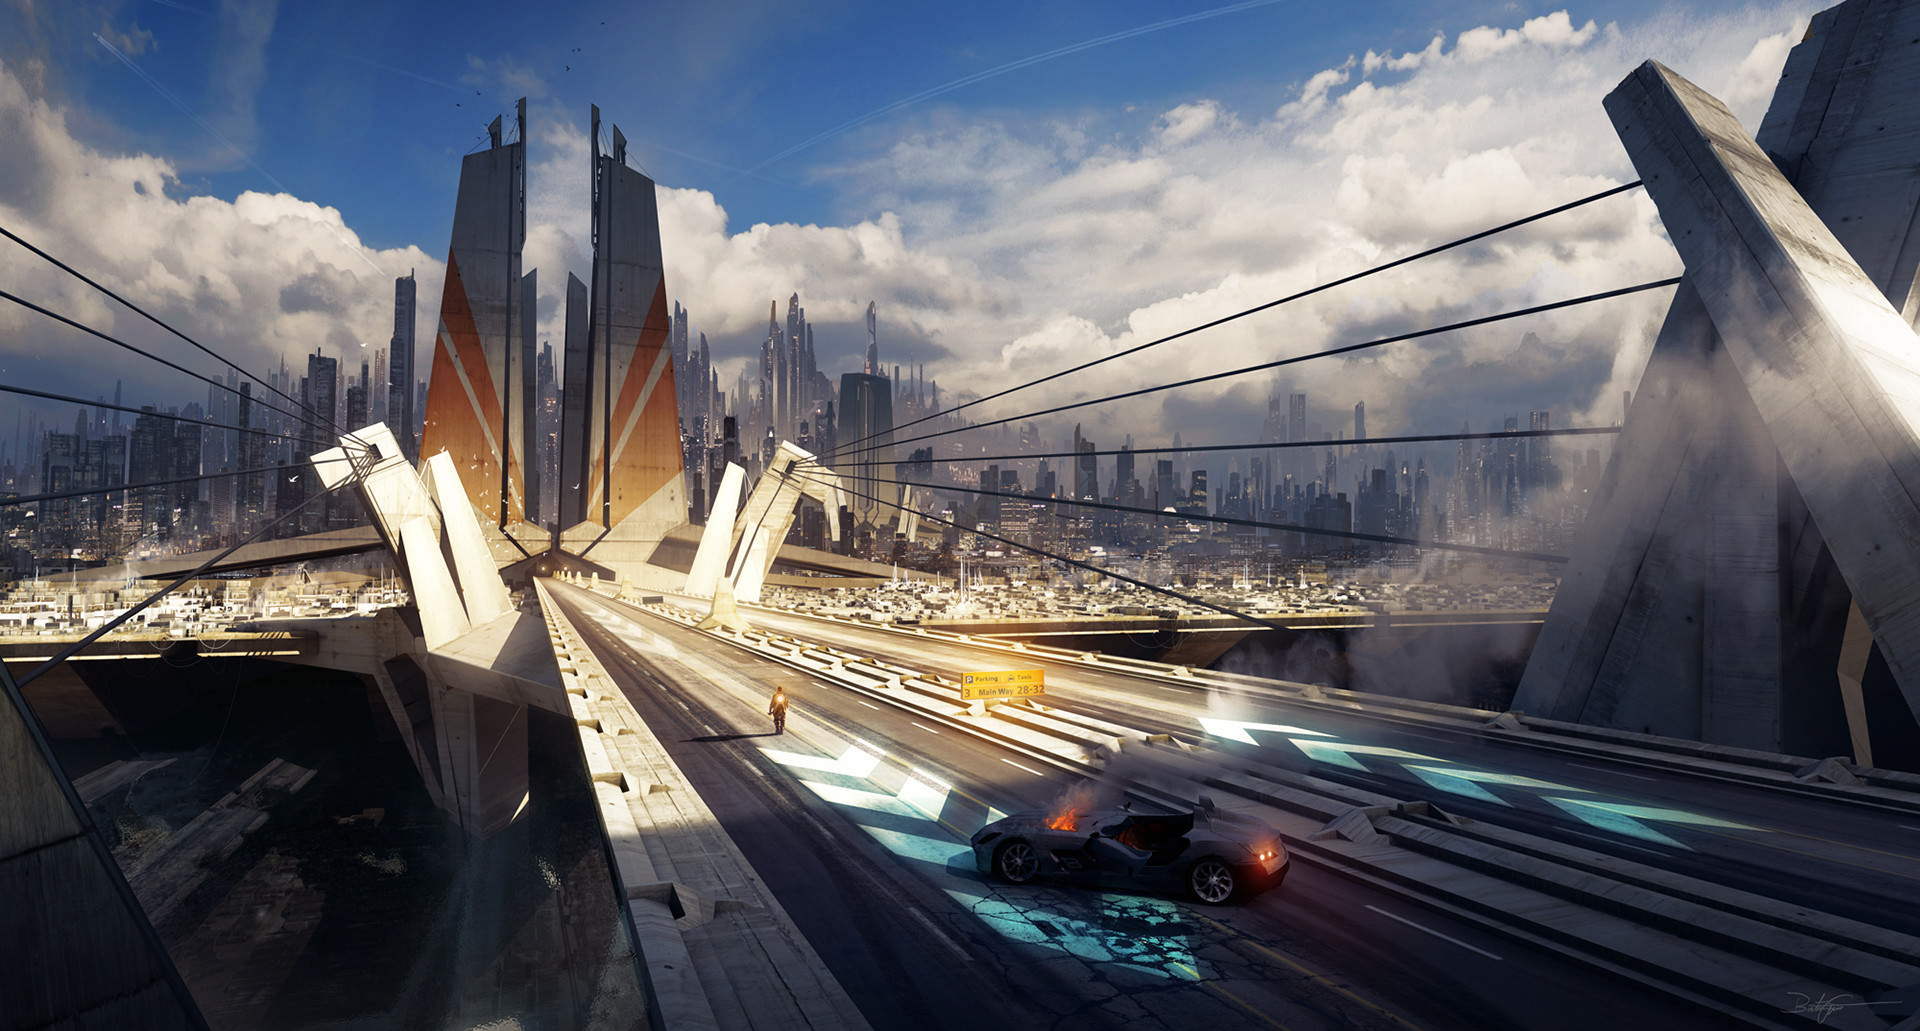 bastien-grivet-alone-on-the-rox-bastien-grivet